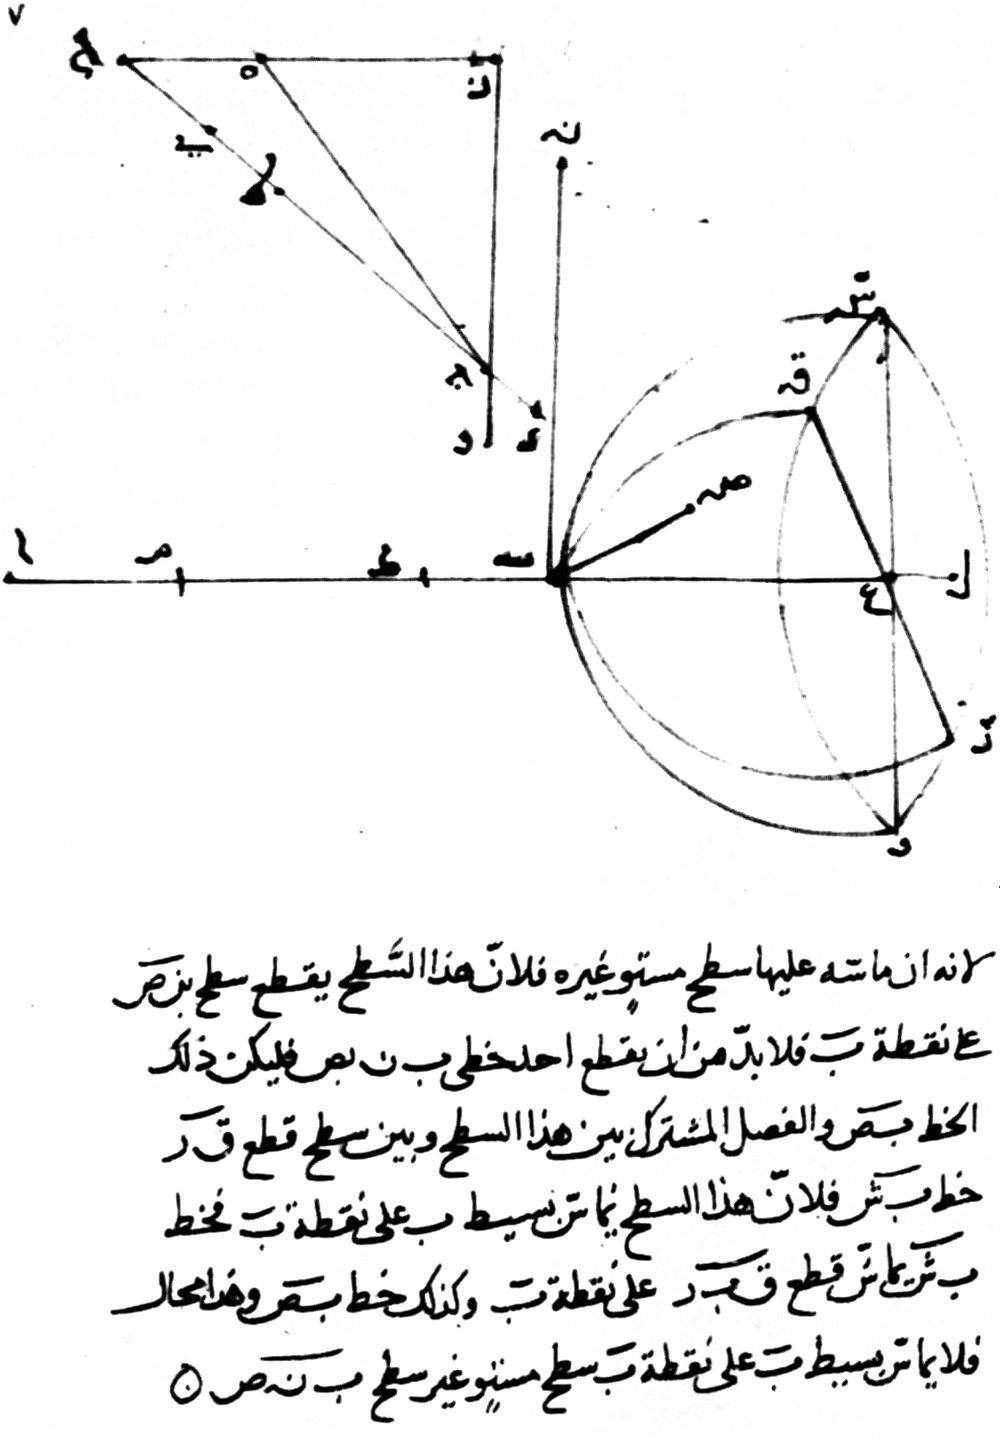 Ibn Sahl's drawings and description of his law of refraction.